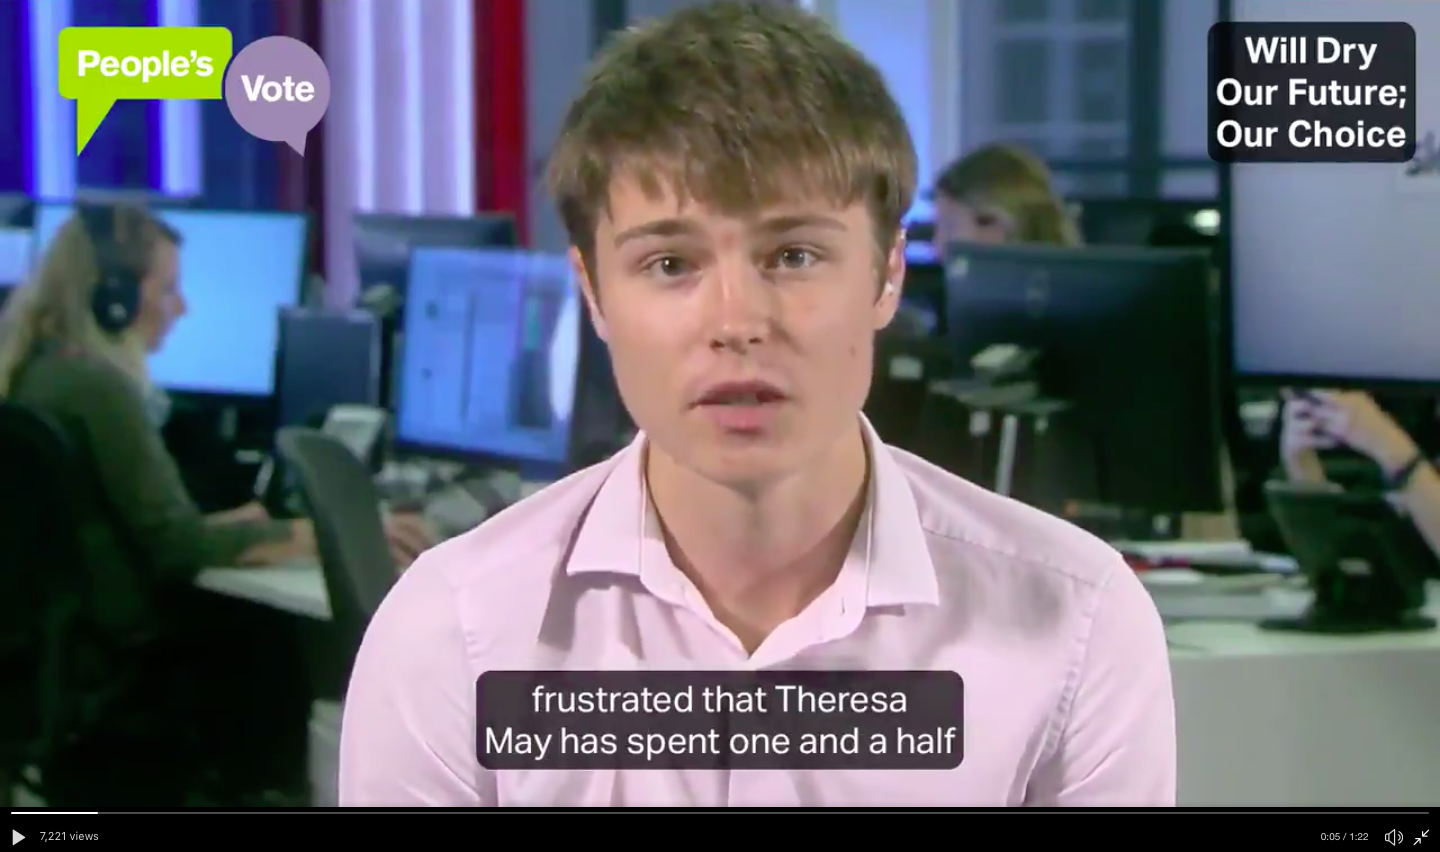 PeoplesVoteVideo2.png